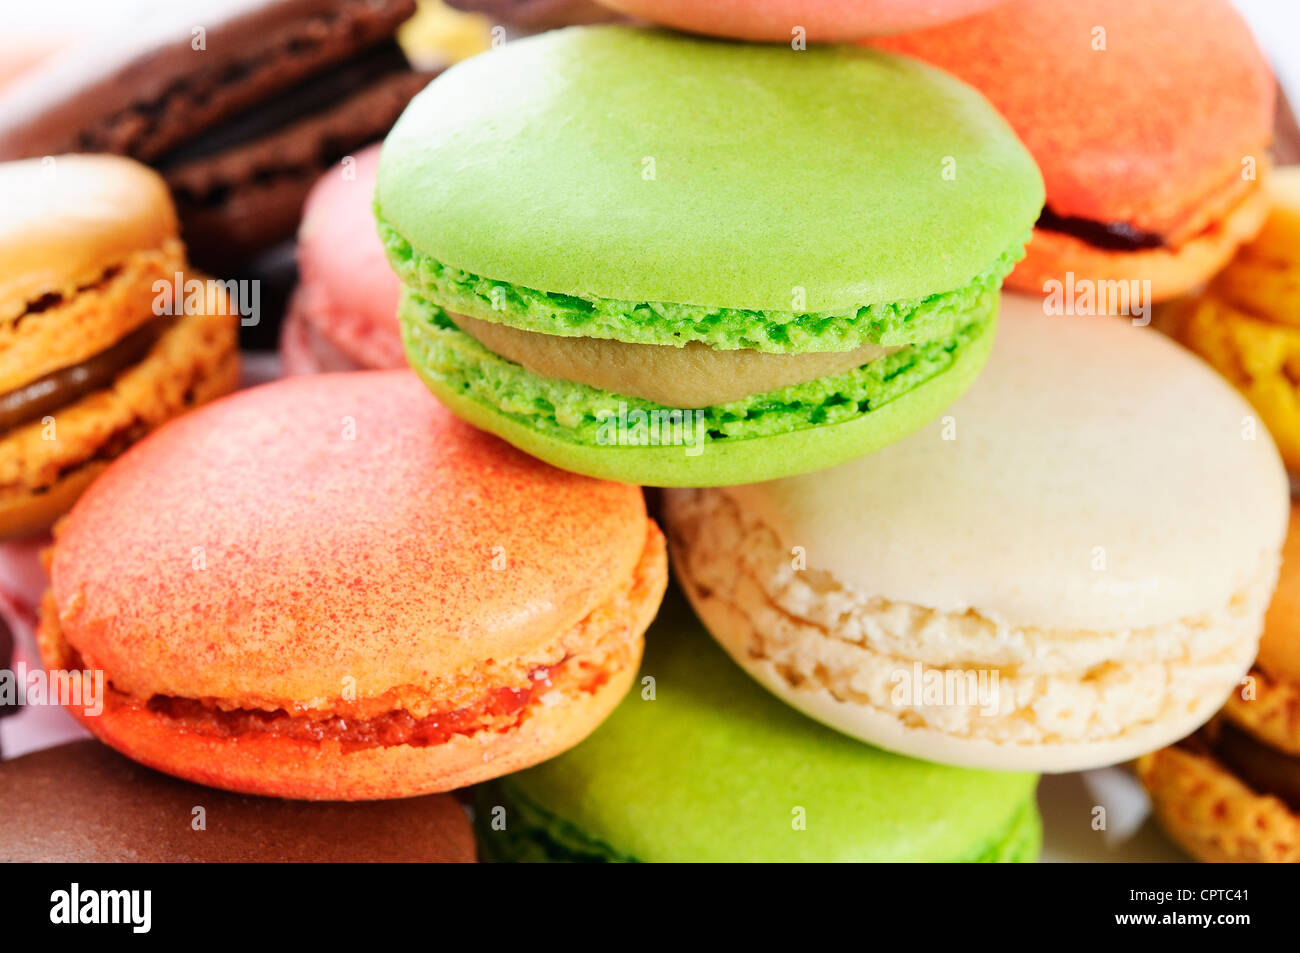 Colorful macaroons on white background - Stock Image